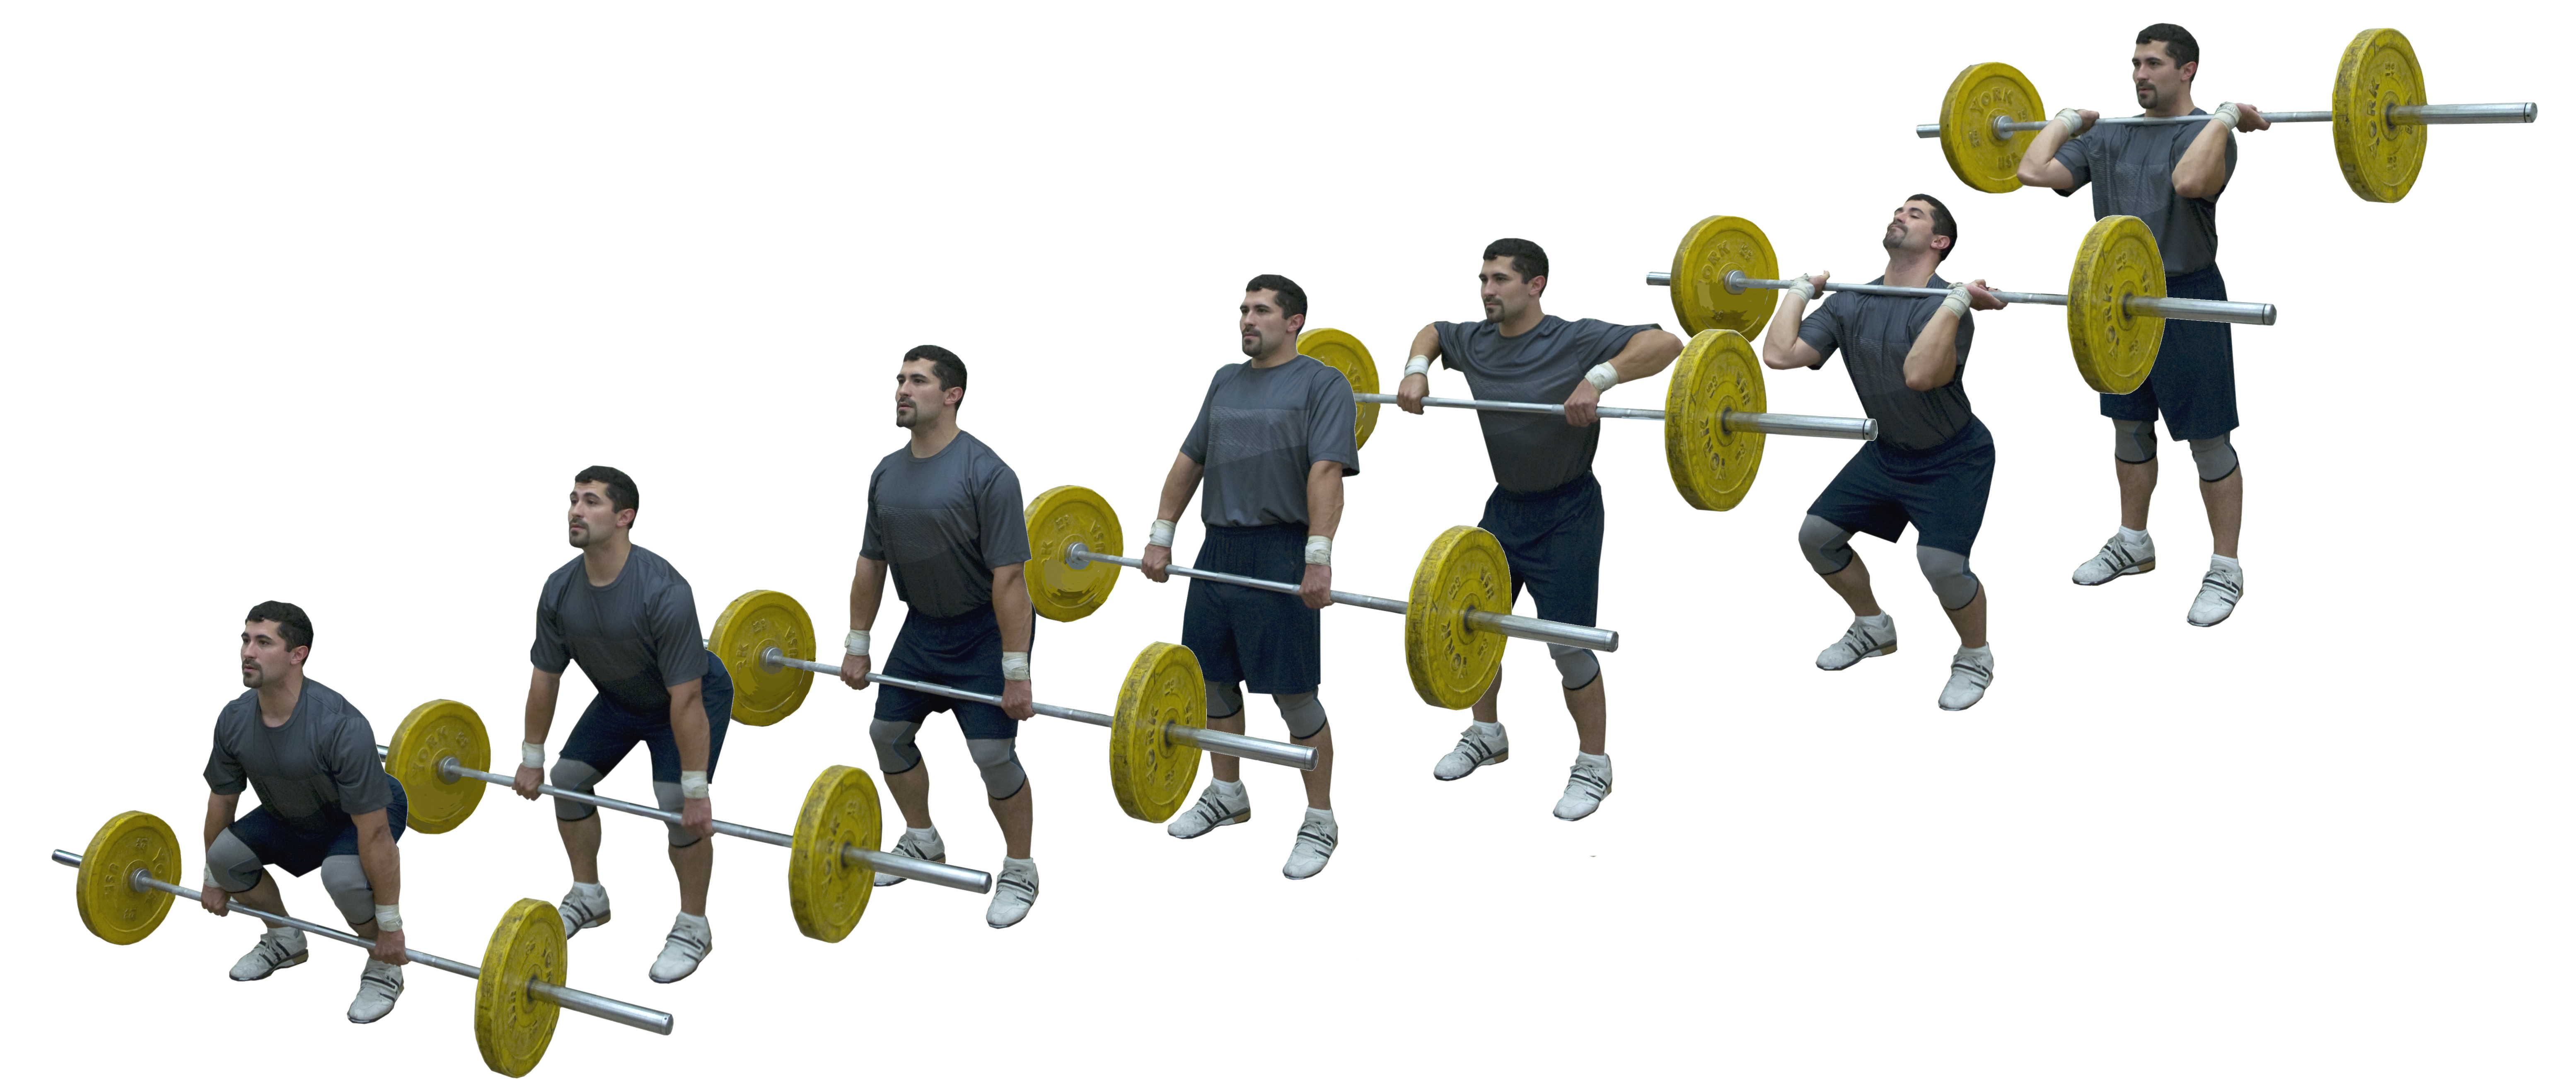 How to Perform a Power Clean Lift